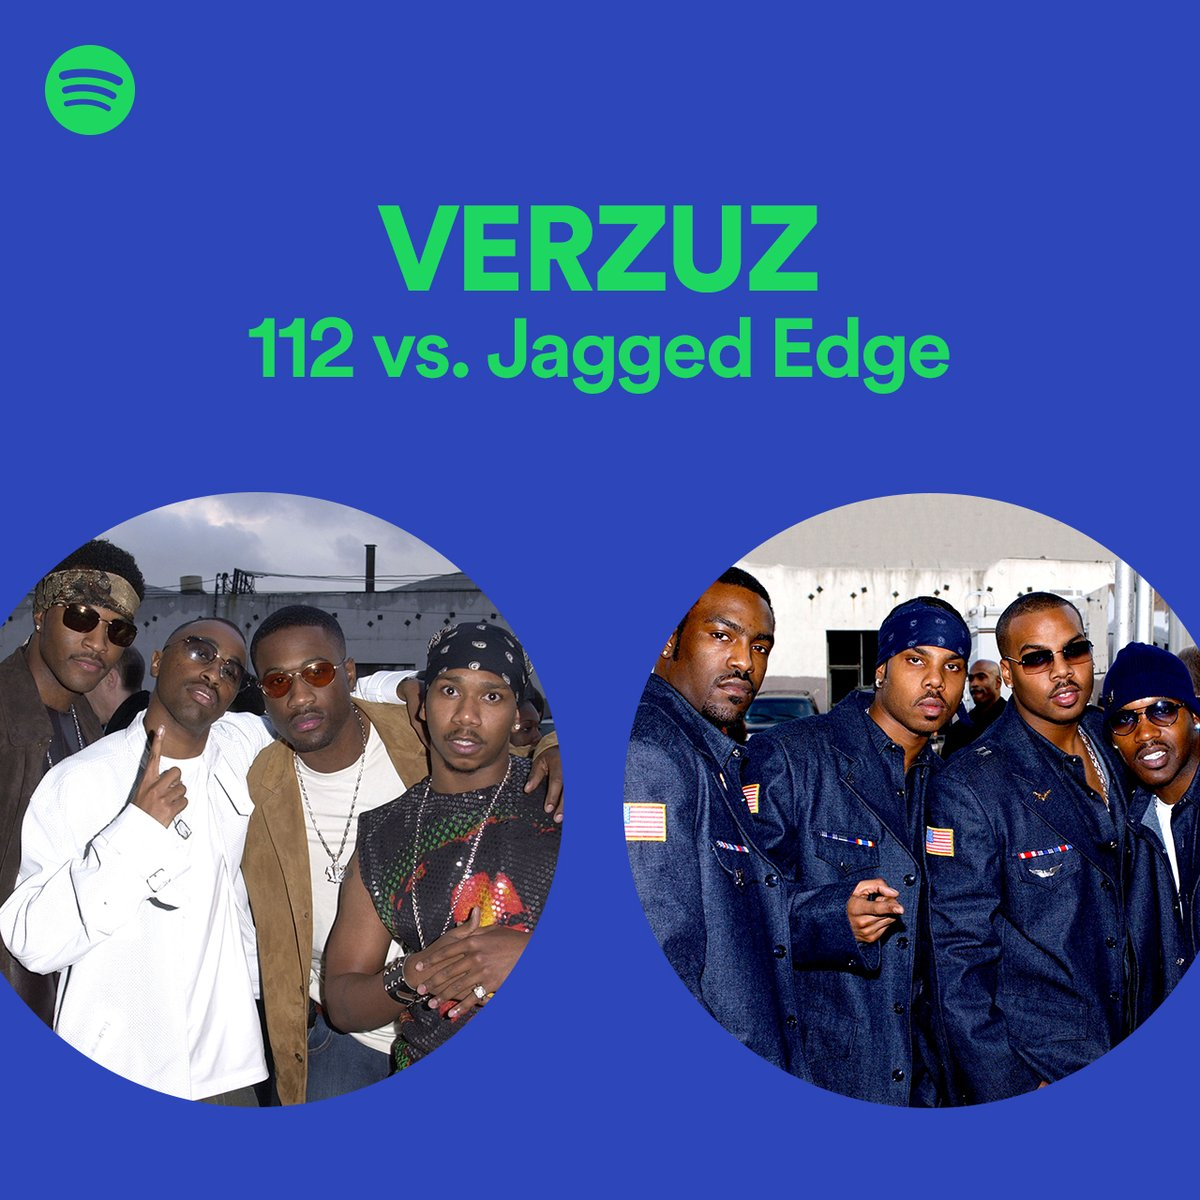 Something for the lovers 💚 112 vs. Jagged Edge. The #Verzuz playlist. spoti.fi/112vsJagged